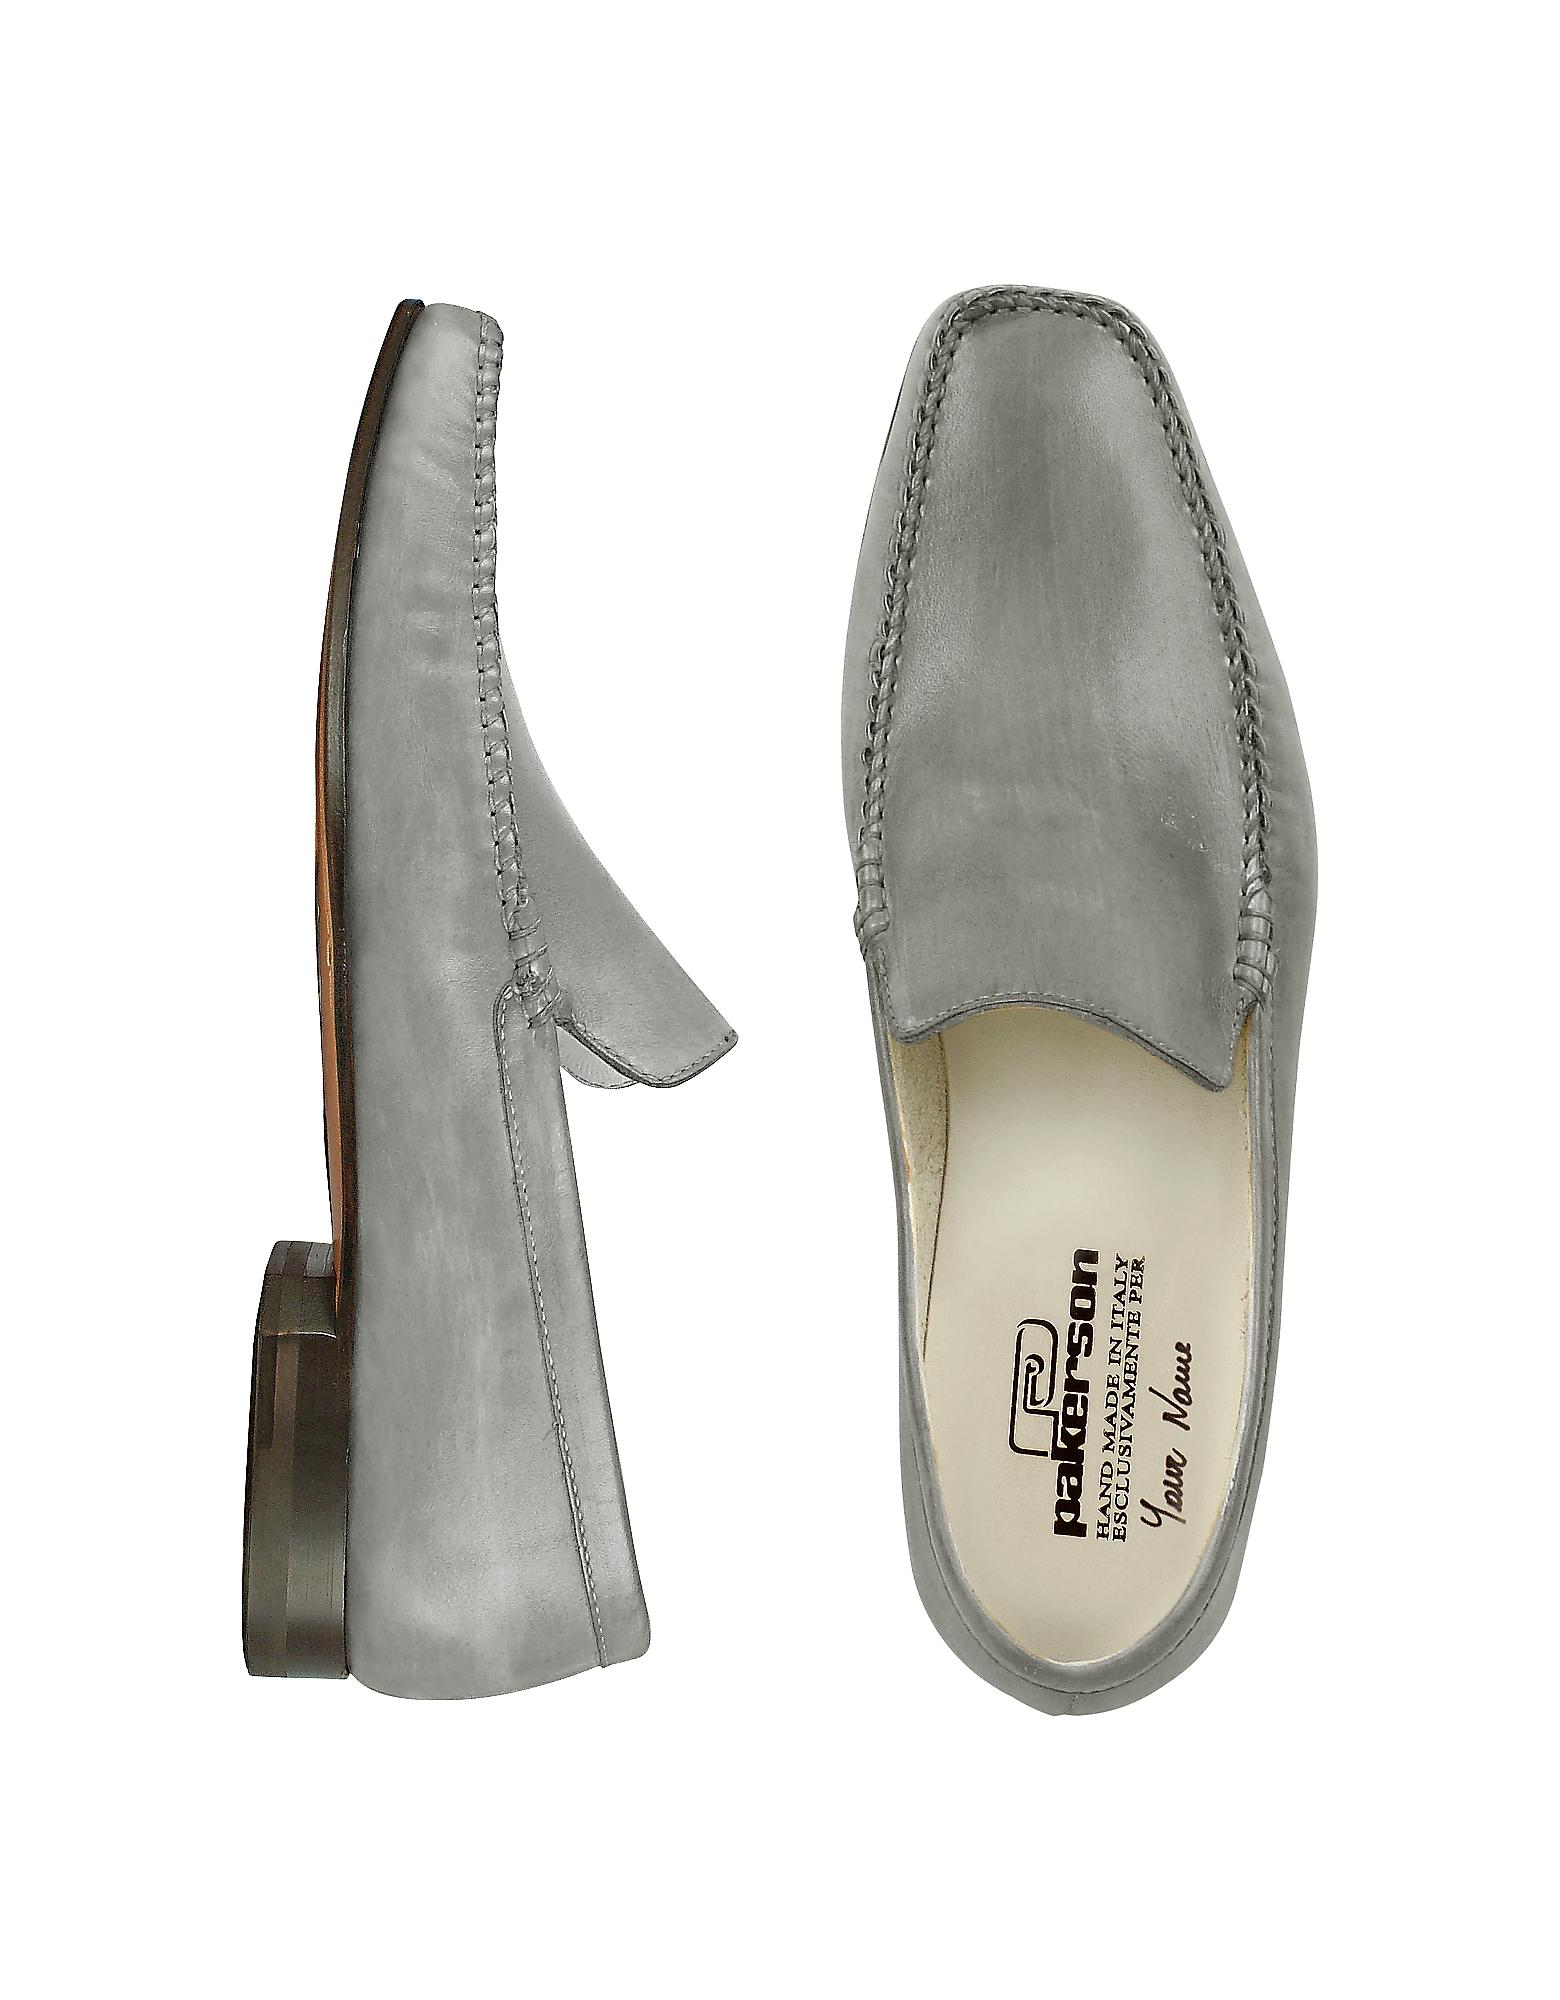 Pakerson Designer Shoes, Italian Handmade Leather Loafer Shoes